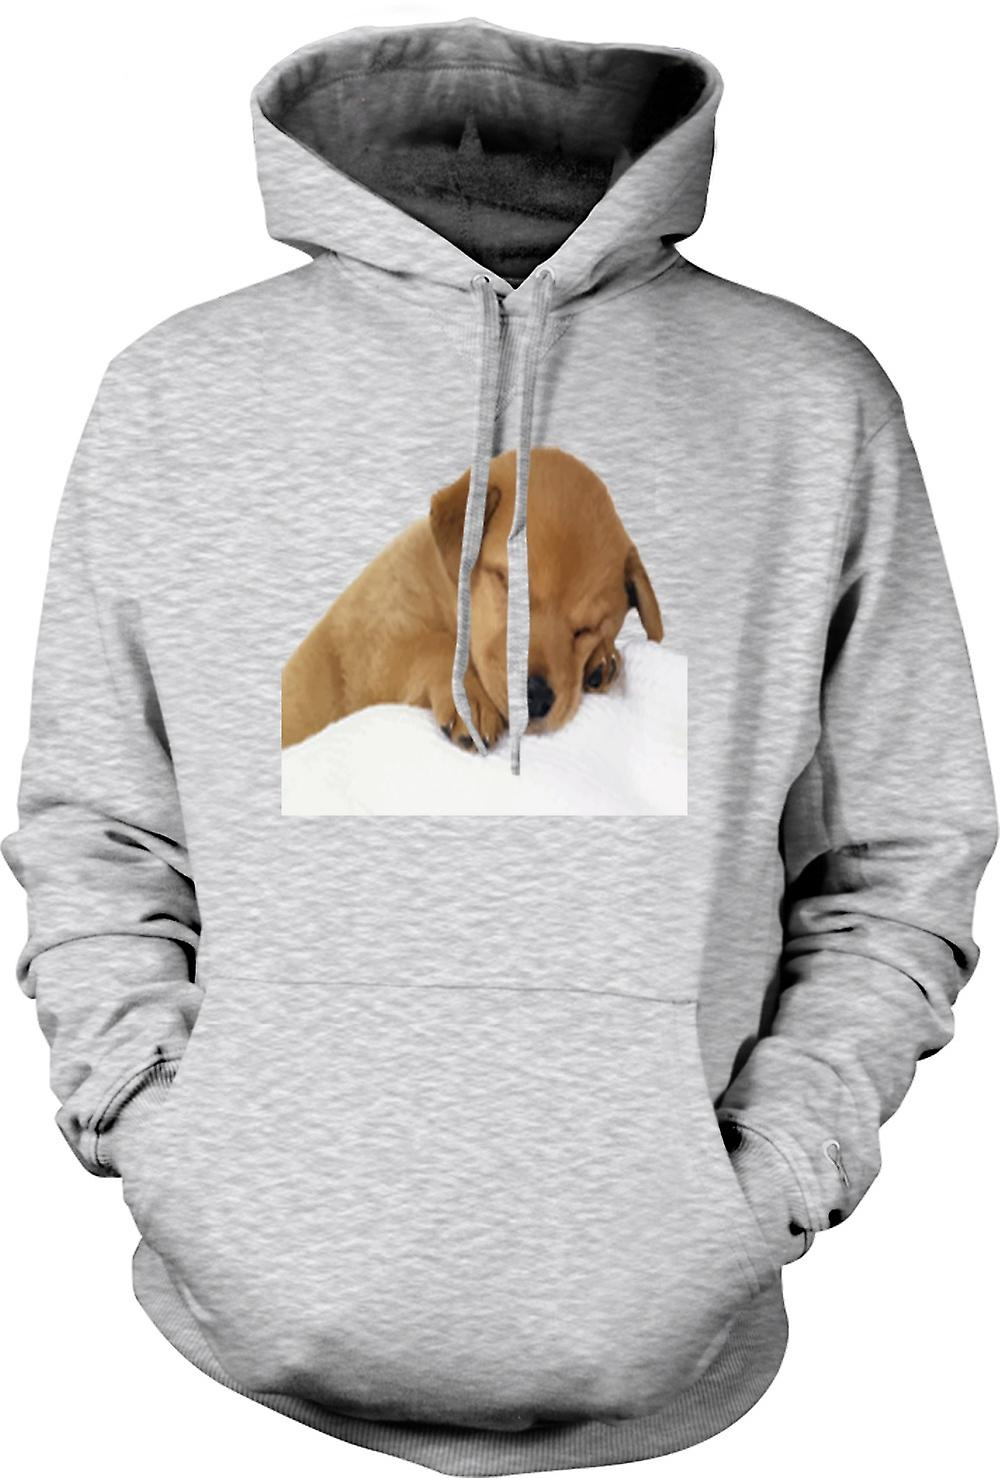 Mens Hoodie - Cute Sleeping Puppy Dog